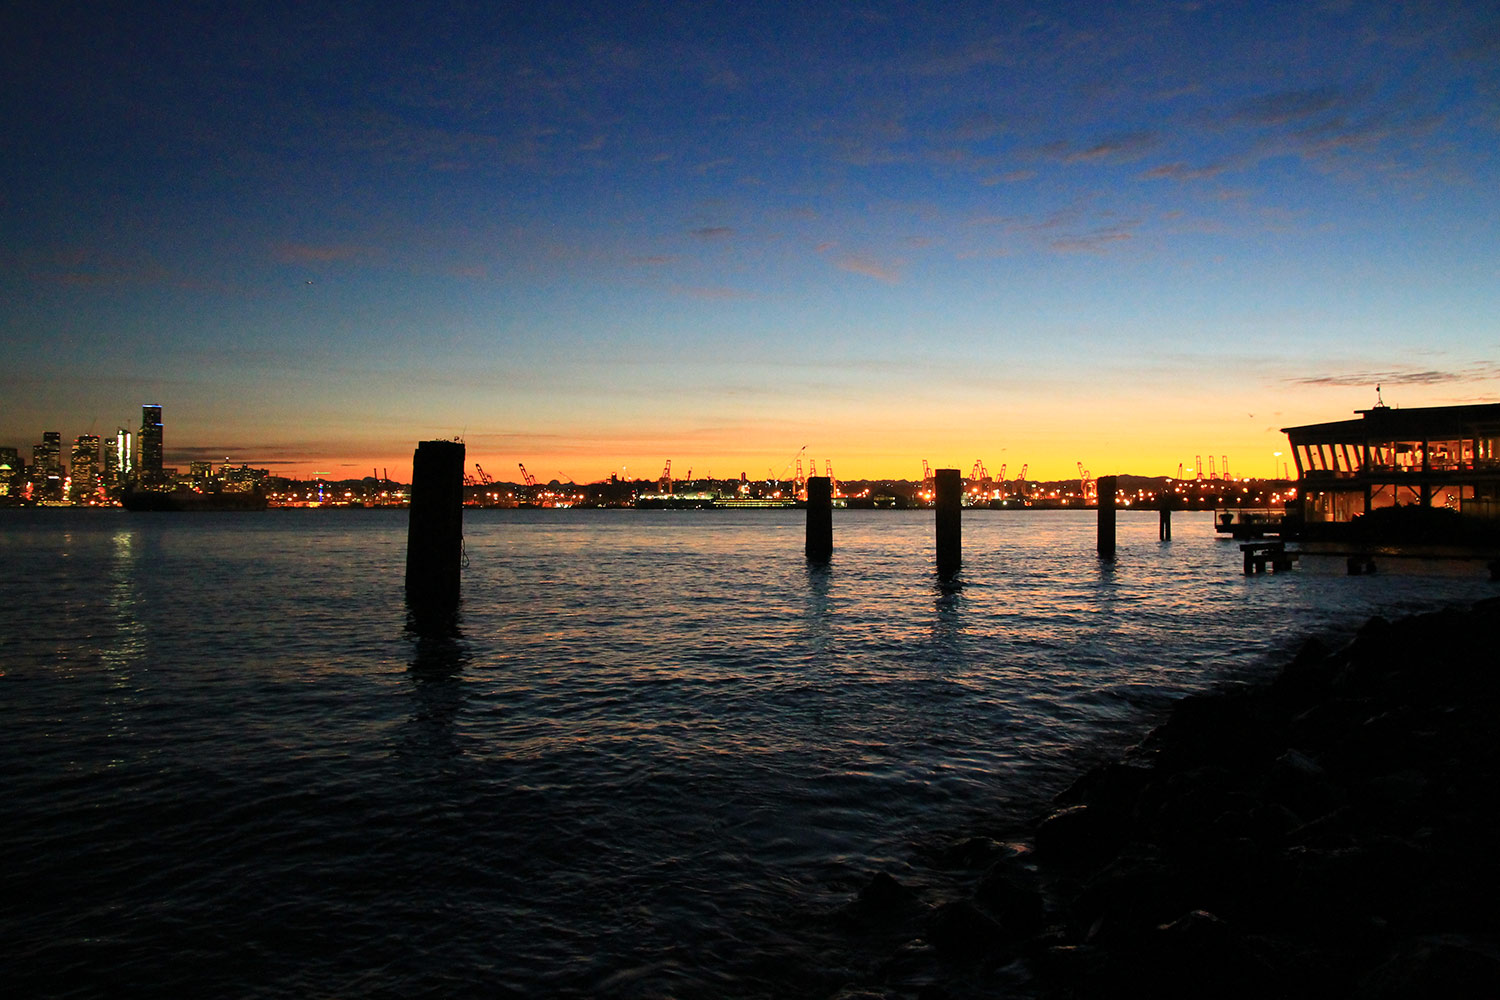 Alki Beach at Sunset - Cory Bagley | Official Home Page